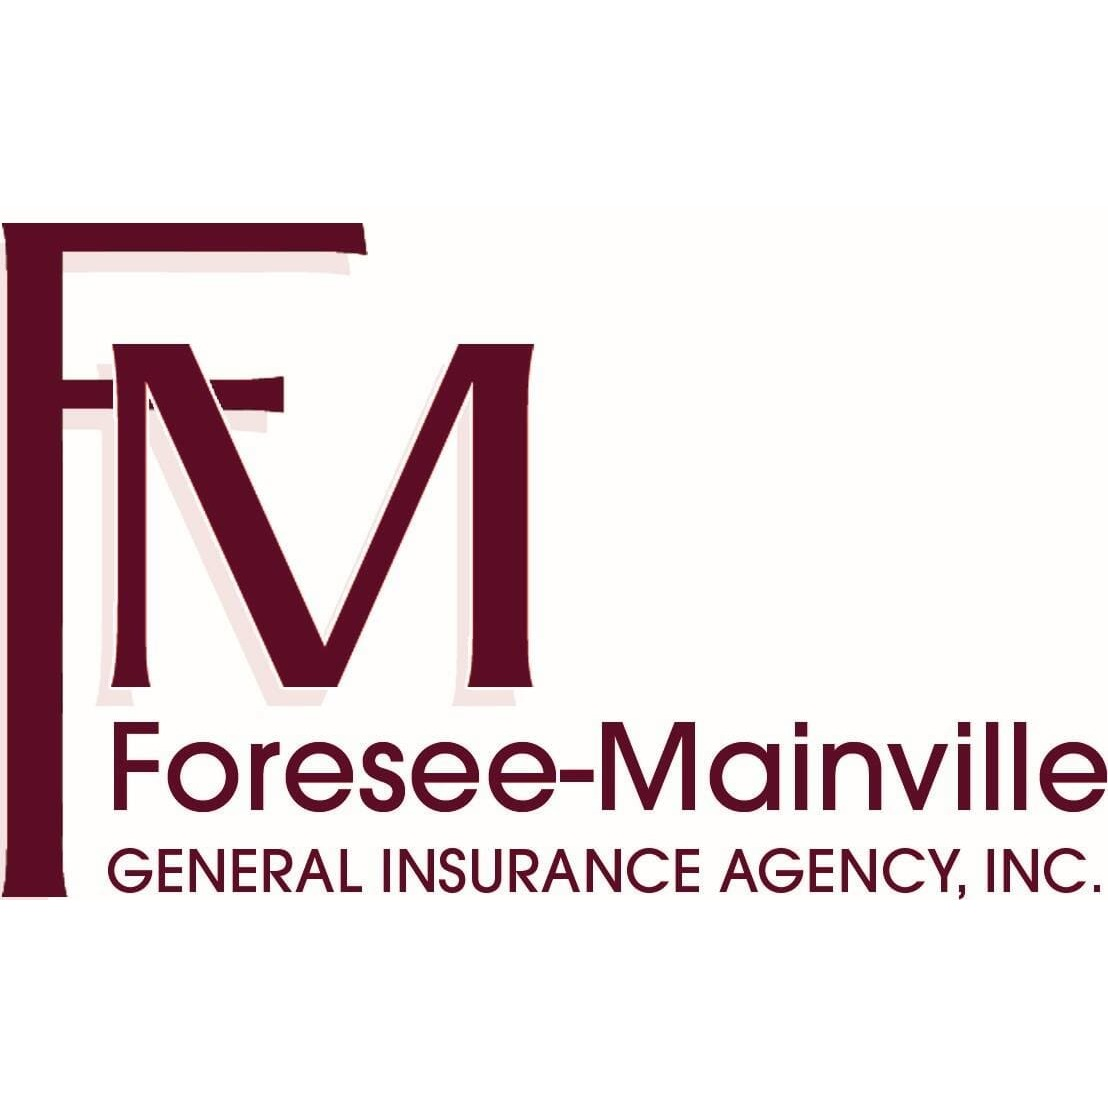 Foresee Mainville  General Insurance Agency Inc.